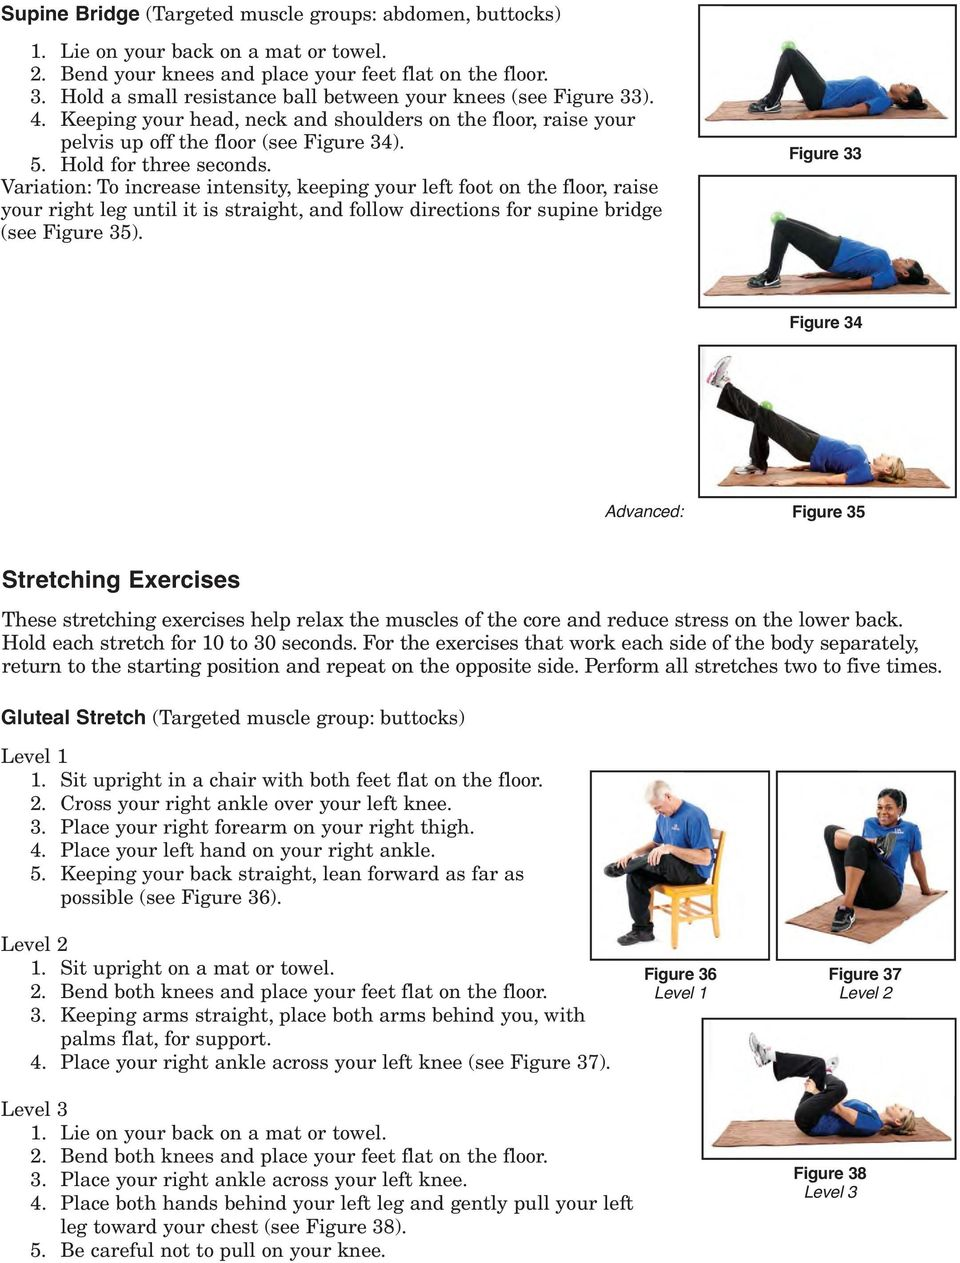 Variation: To increase intensity, keeping your left foot on the floor, raise your right leg until it is straight, and follow directions for supine bridge (see Figure 35).